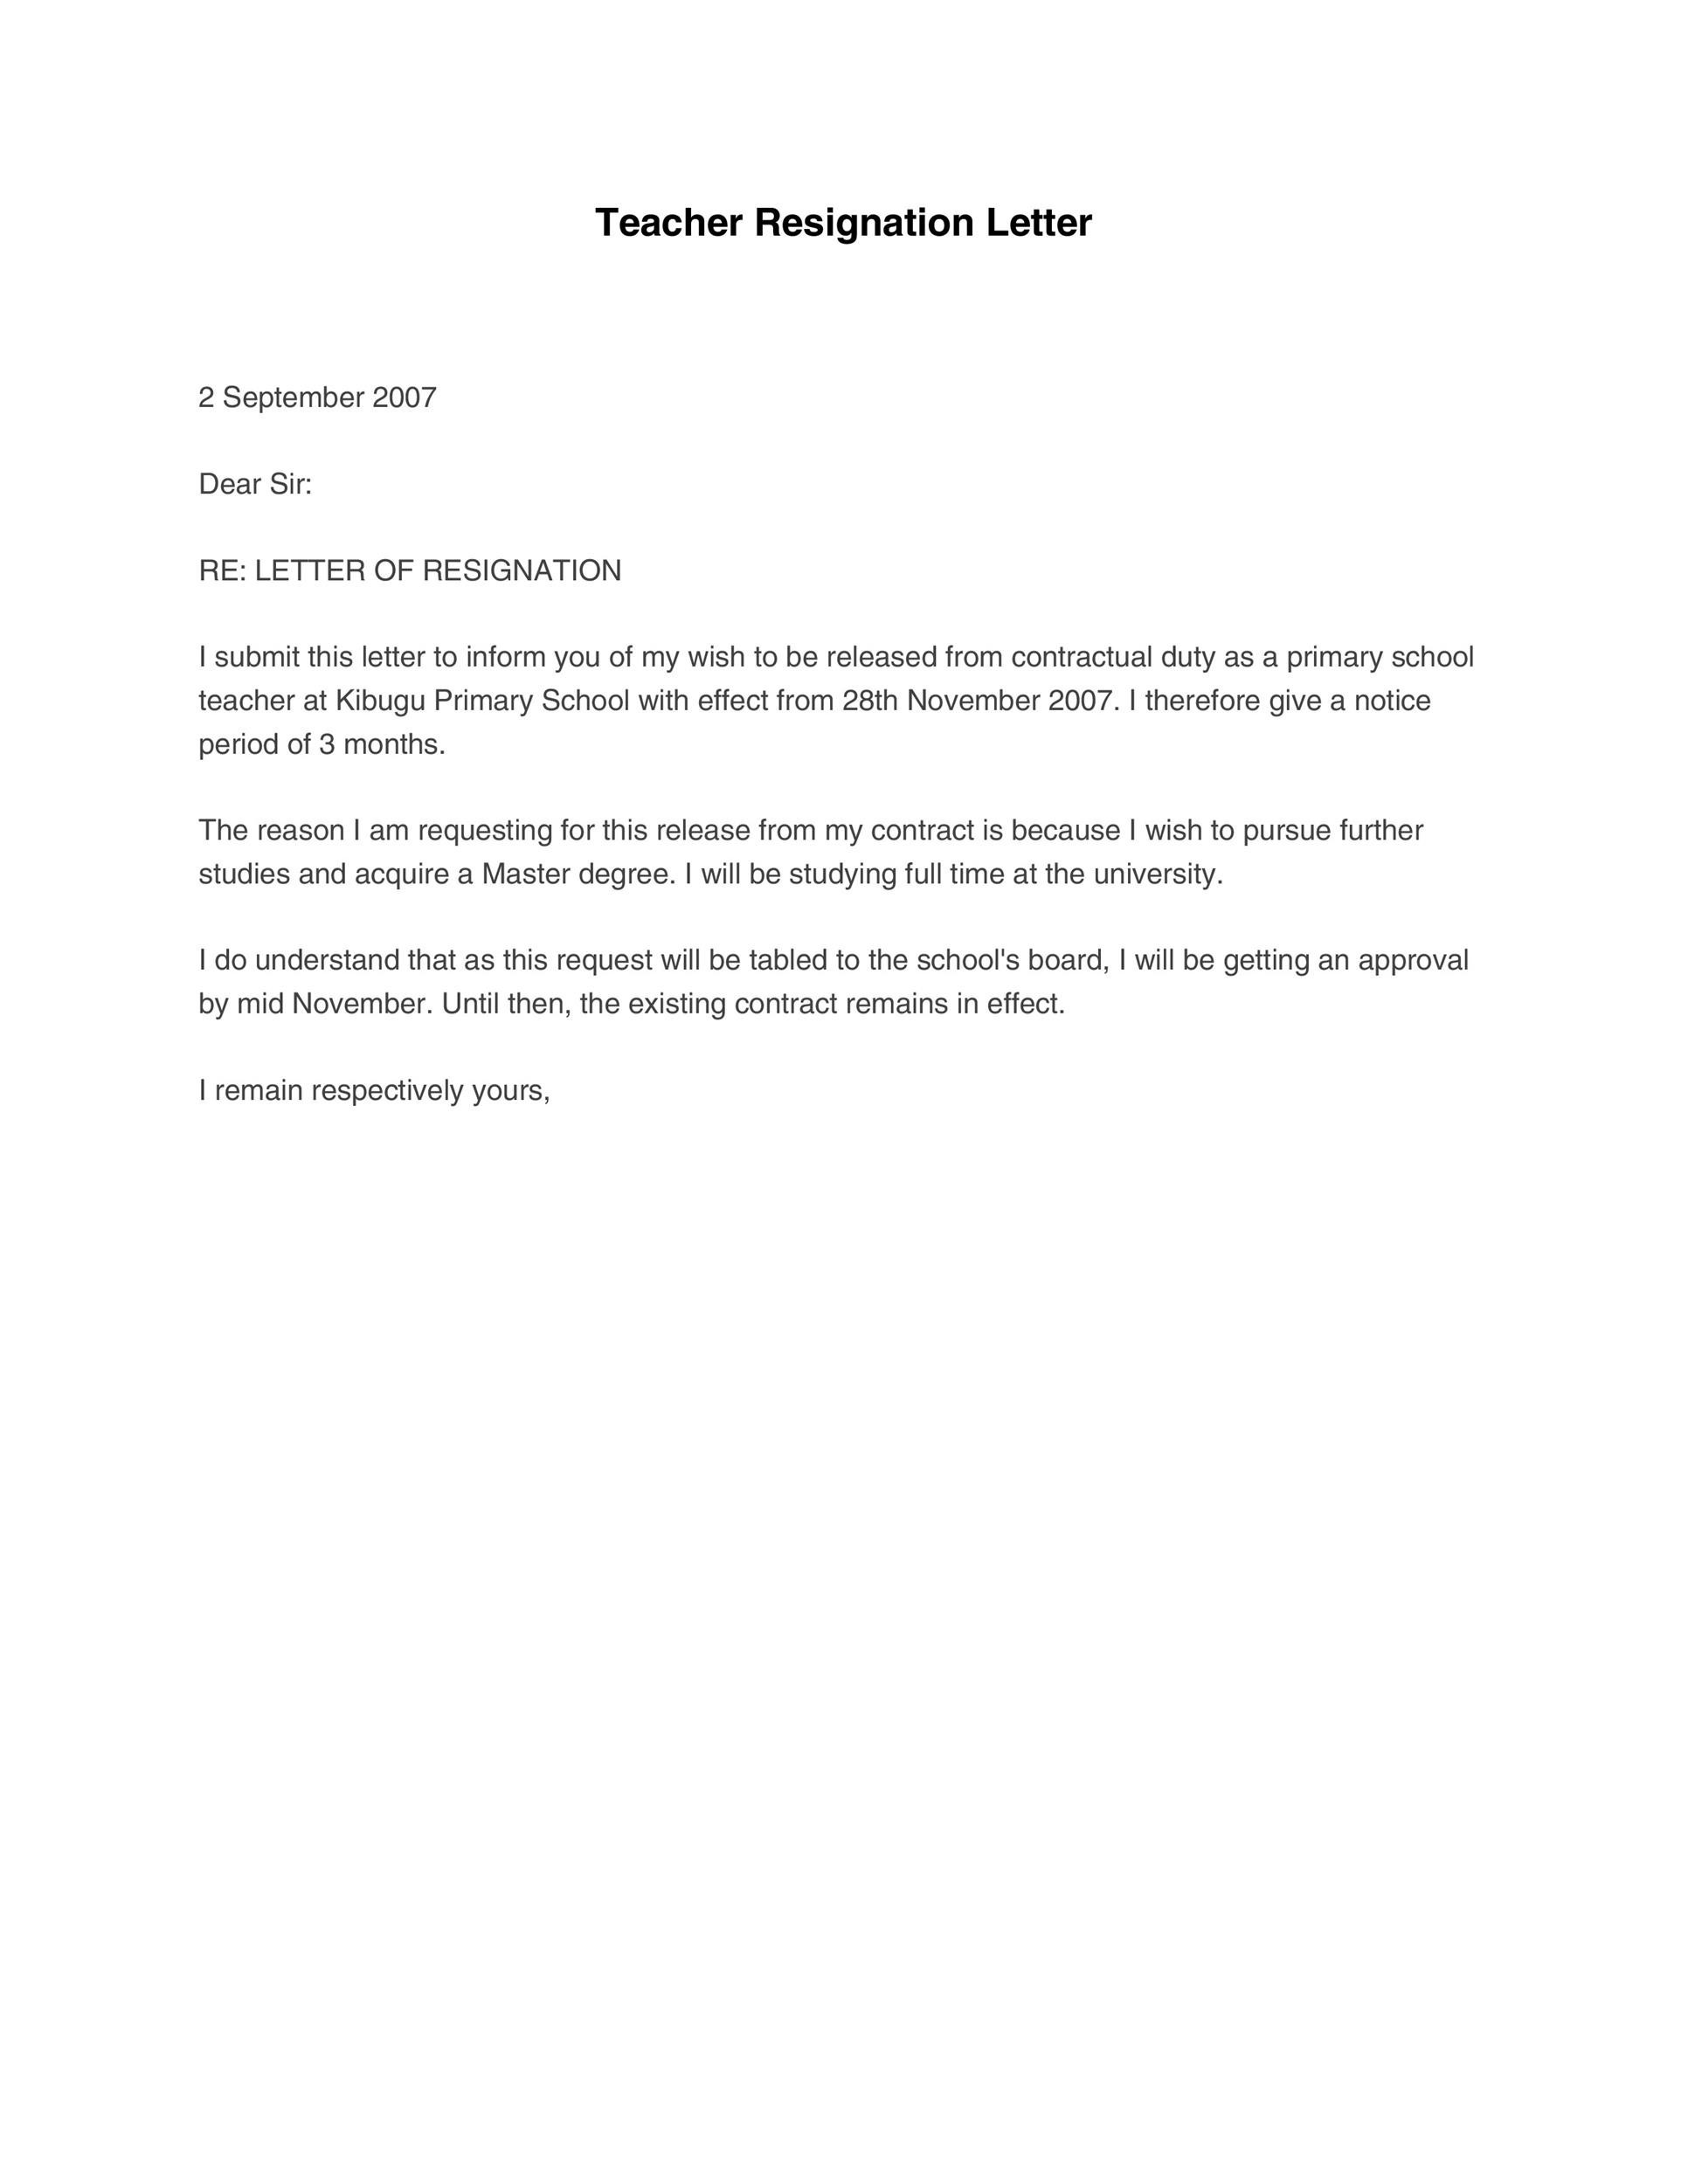 50 BEST Teacher Resignation Letters (MS Word) ᐅ Template Lab